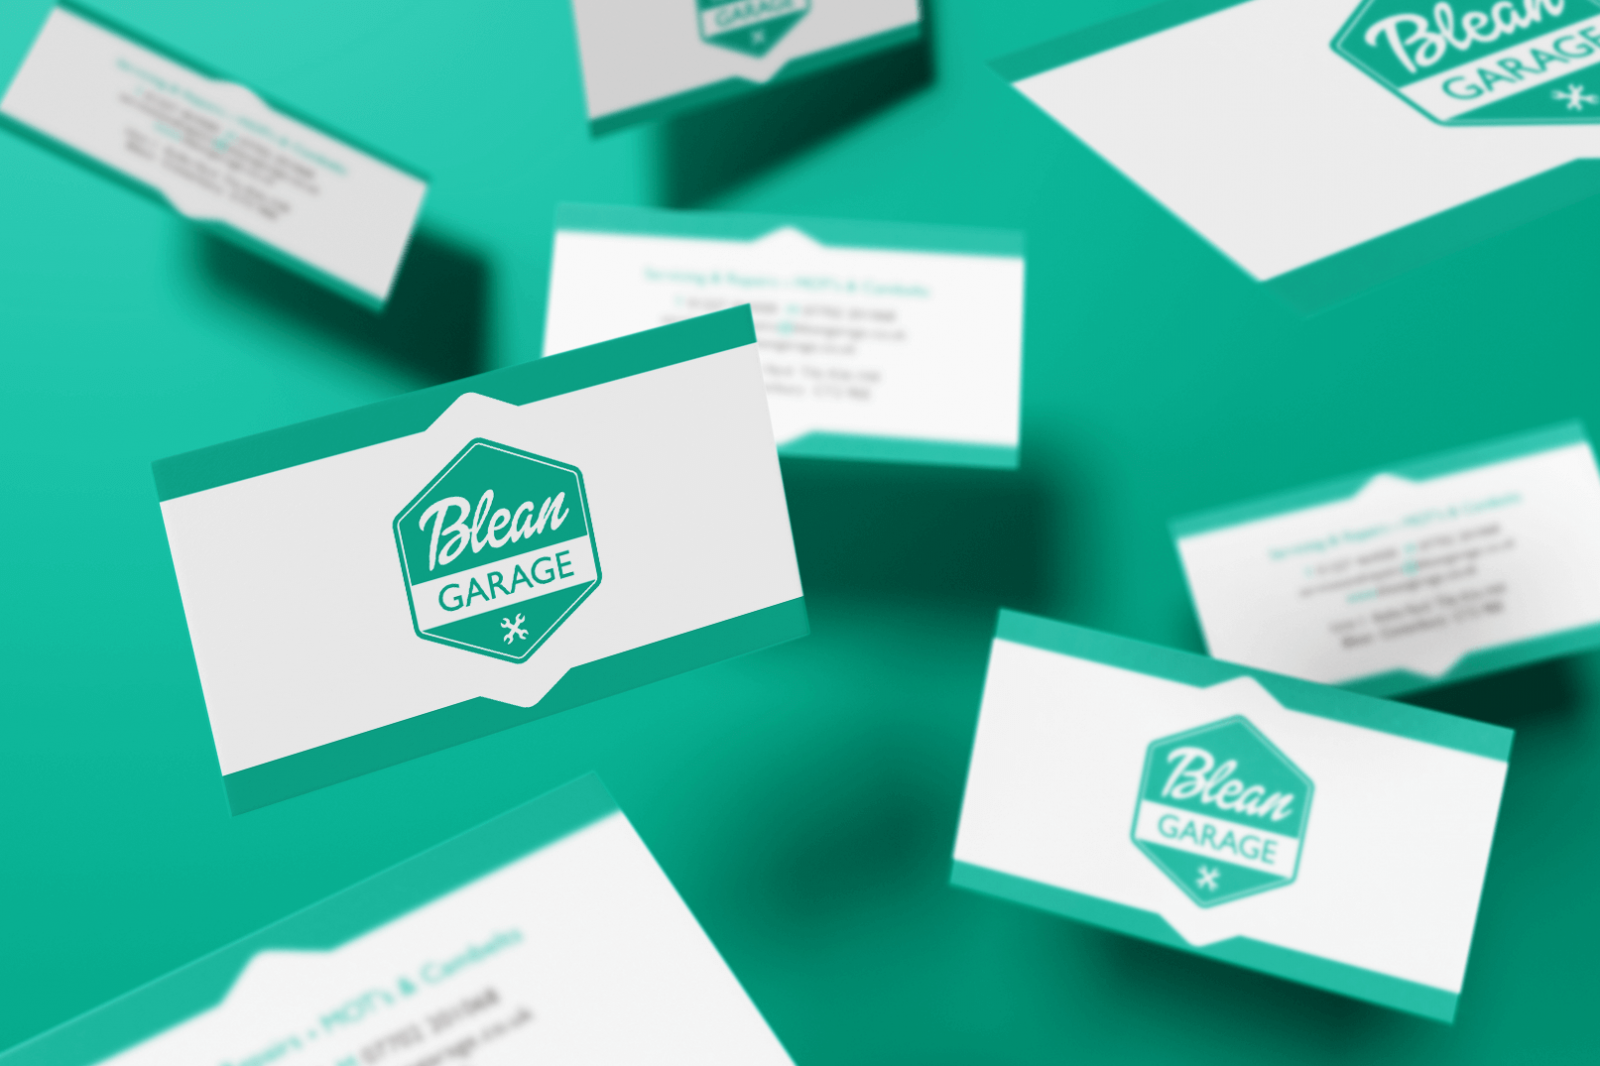 Business-Blean-business-card-corporate-identity-agency-graphic-design-canterbury.png